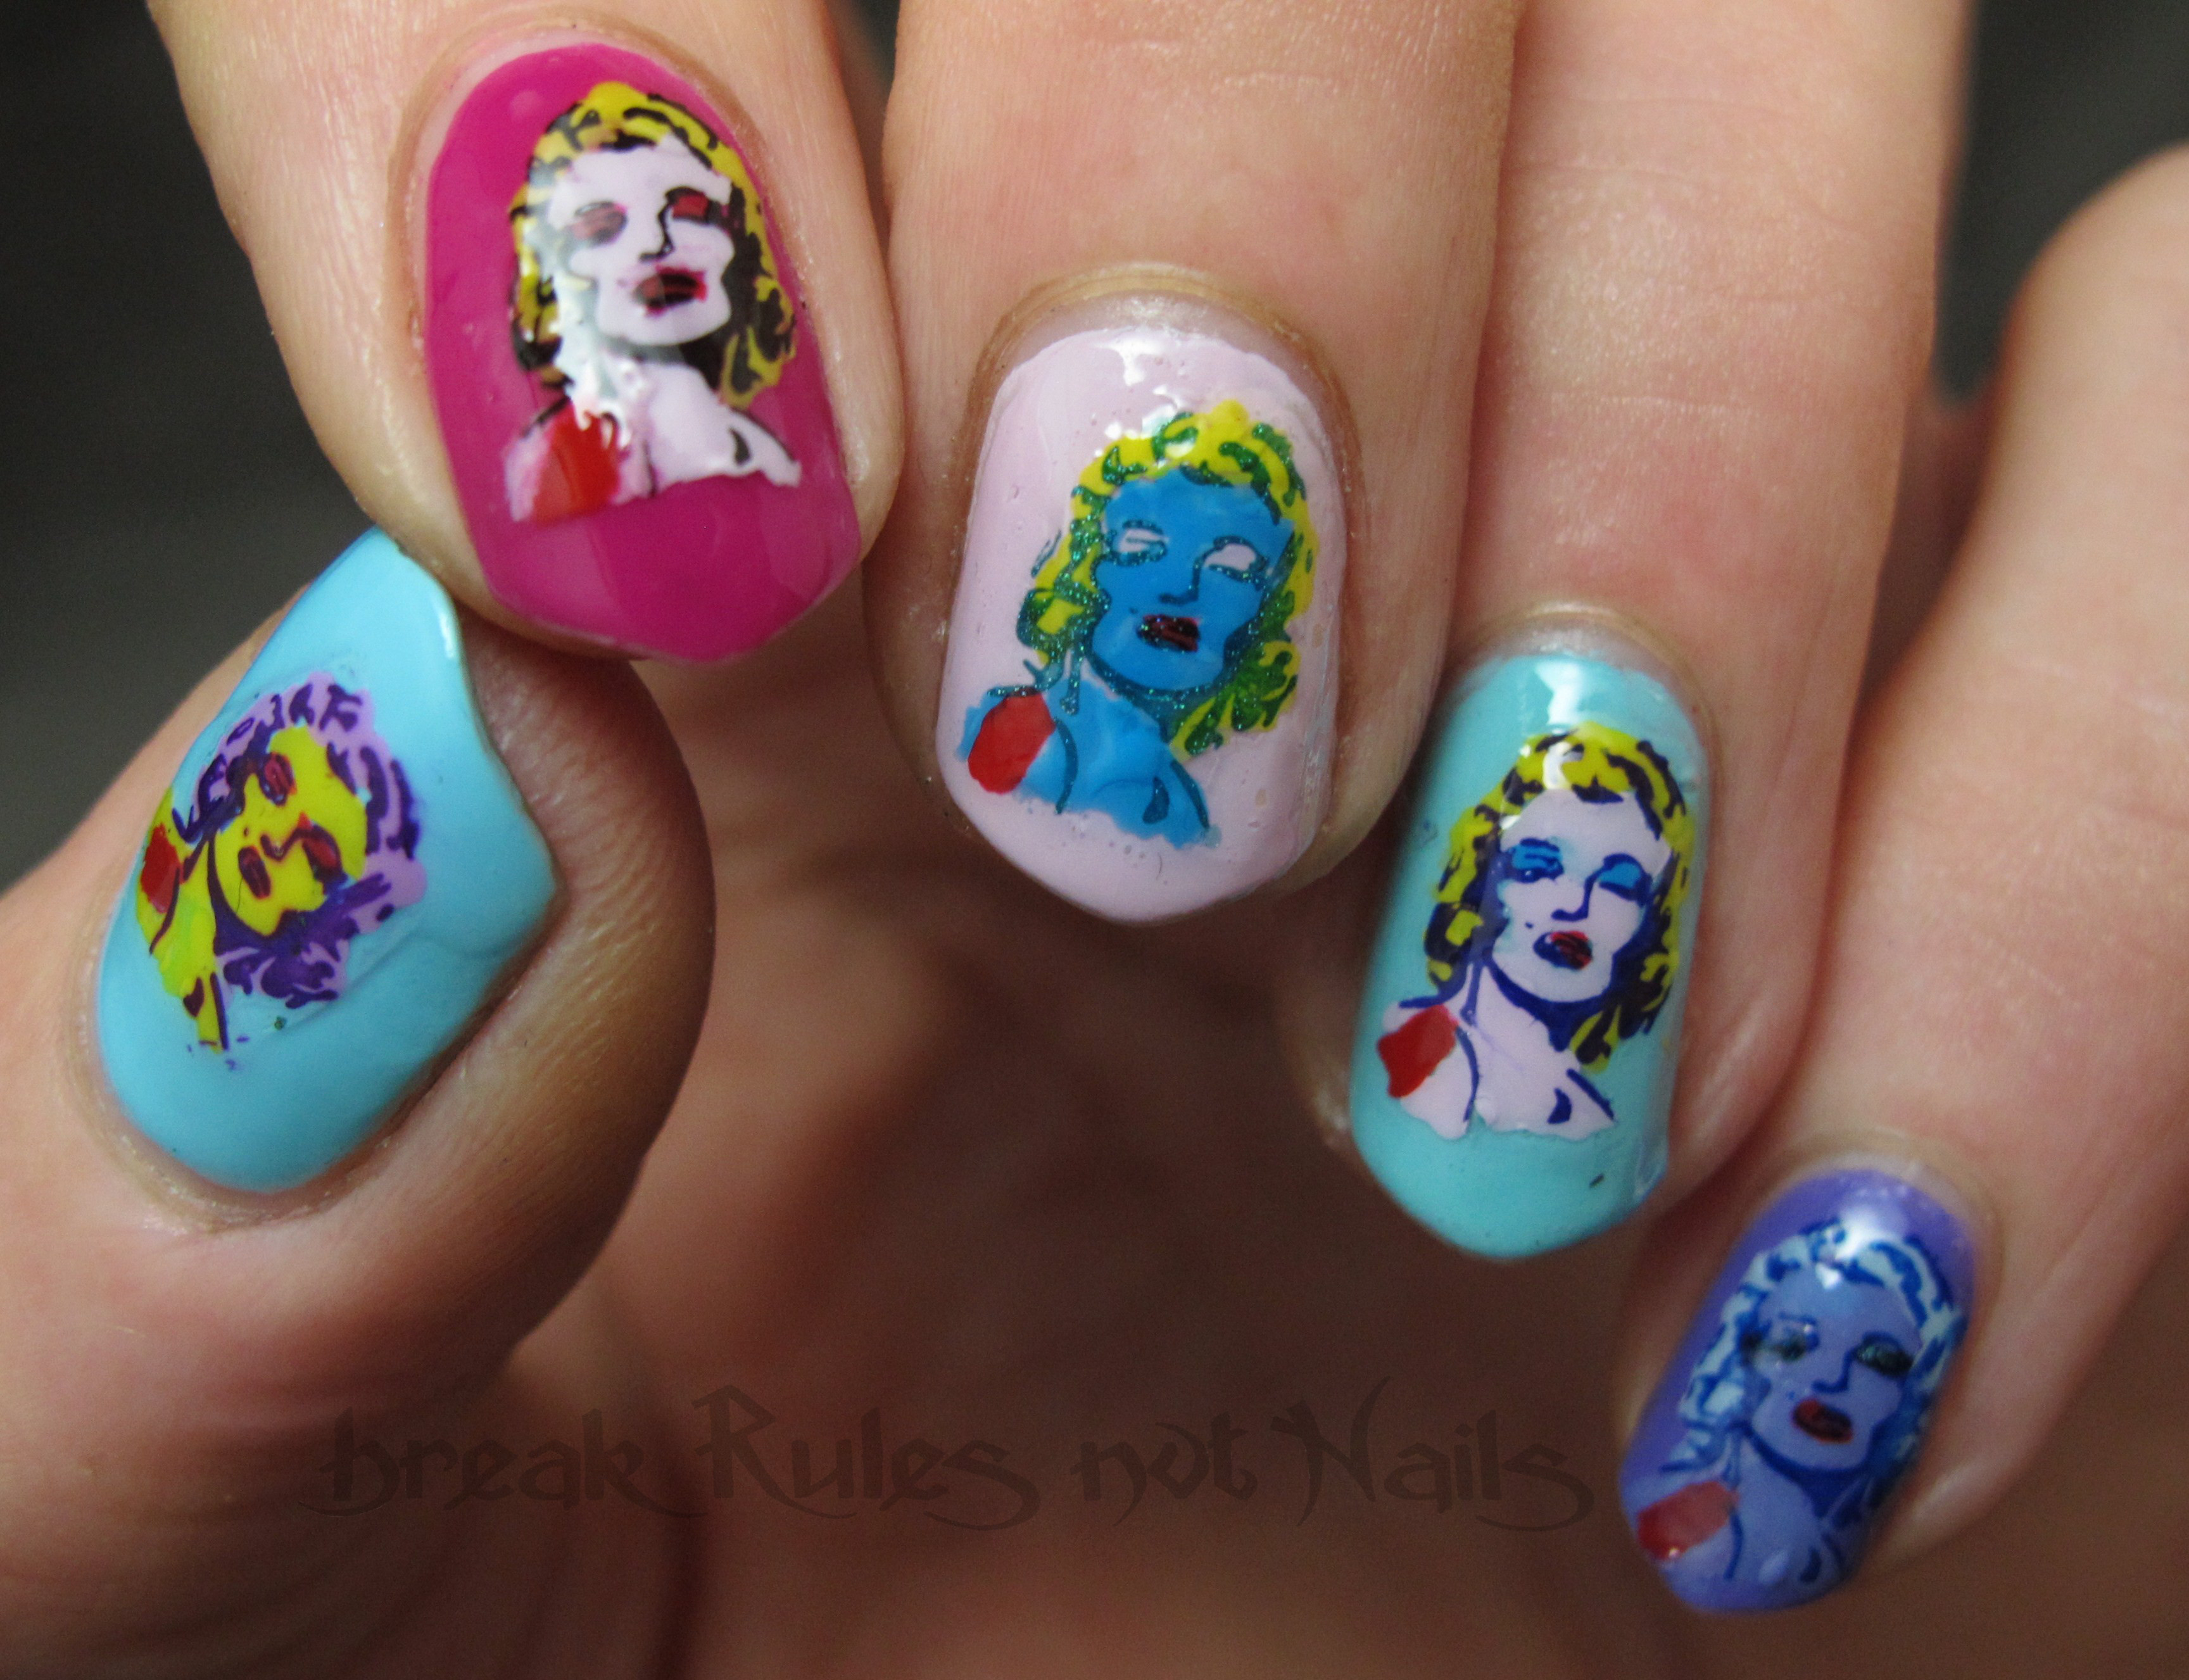 Marilyn Monroe nail art | Break rules, not nails